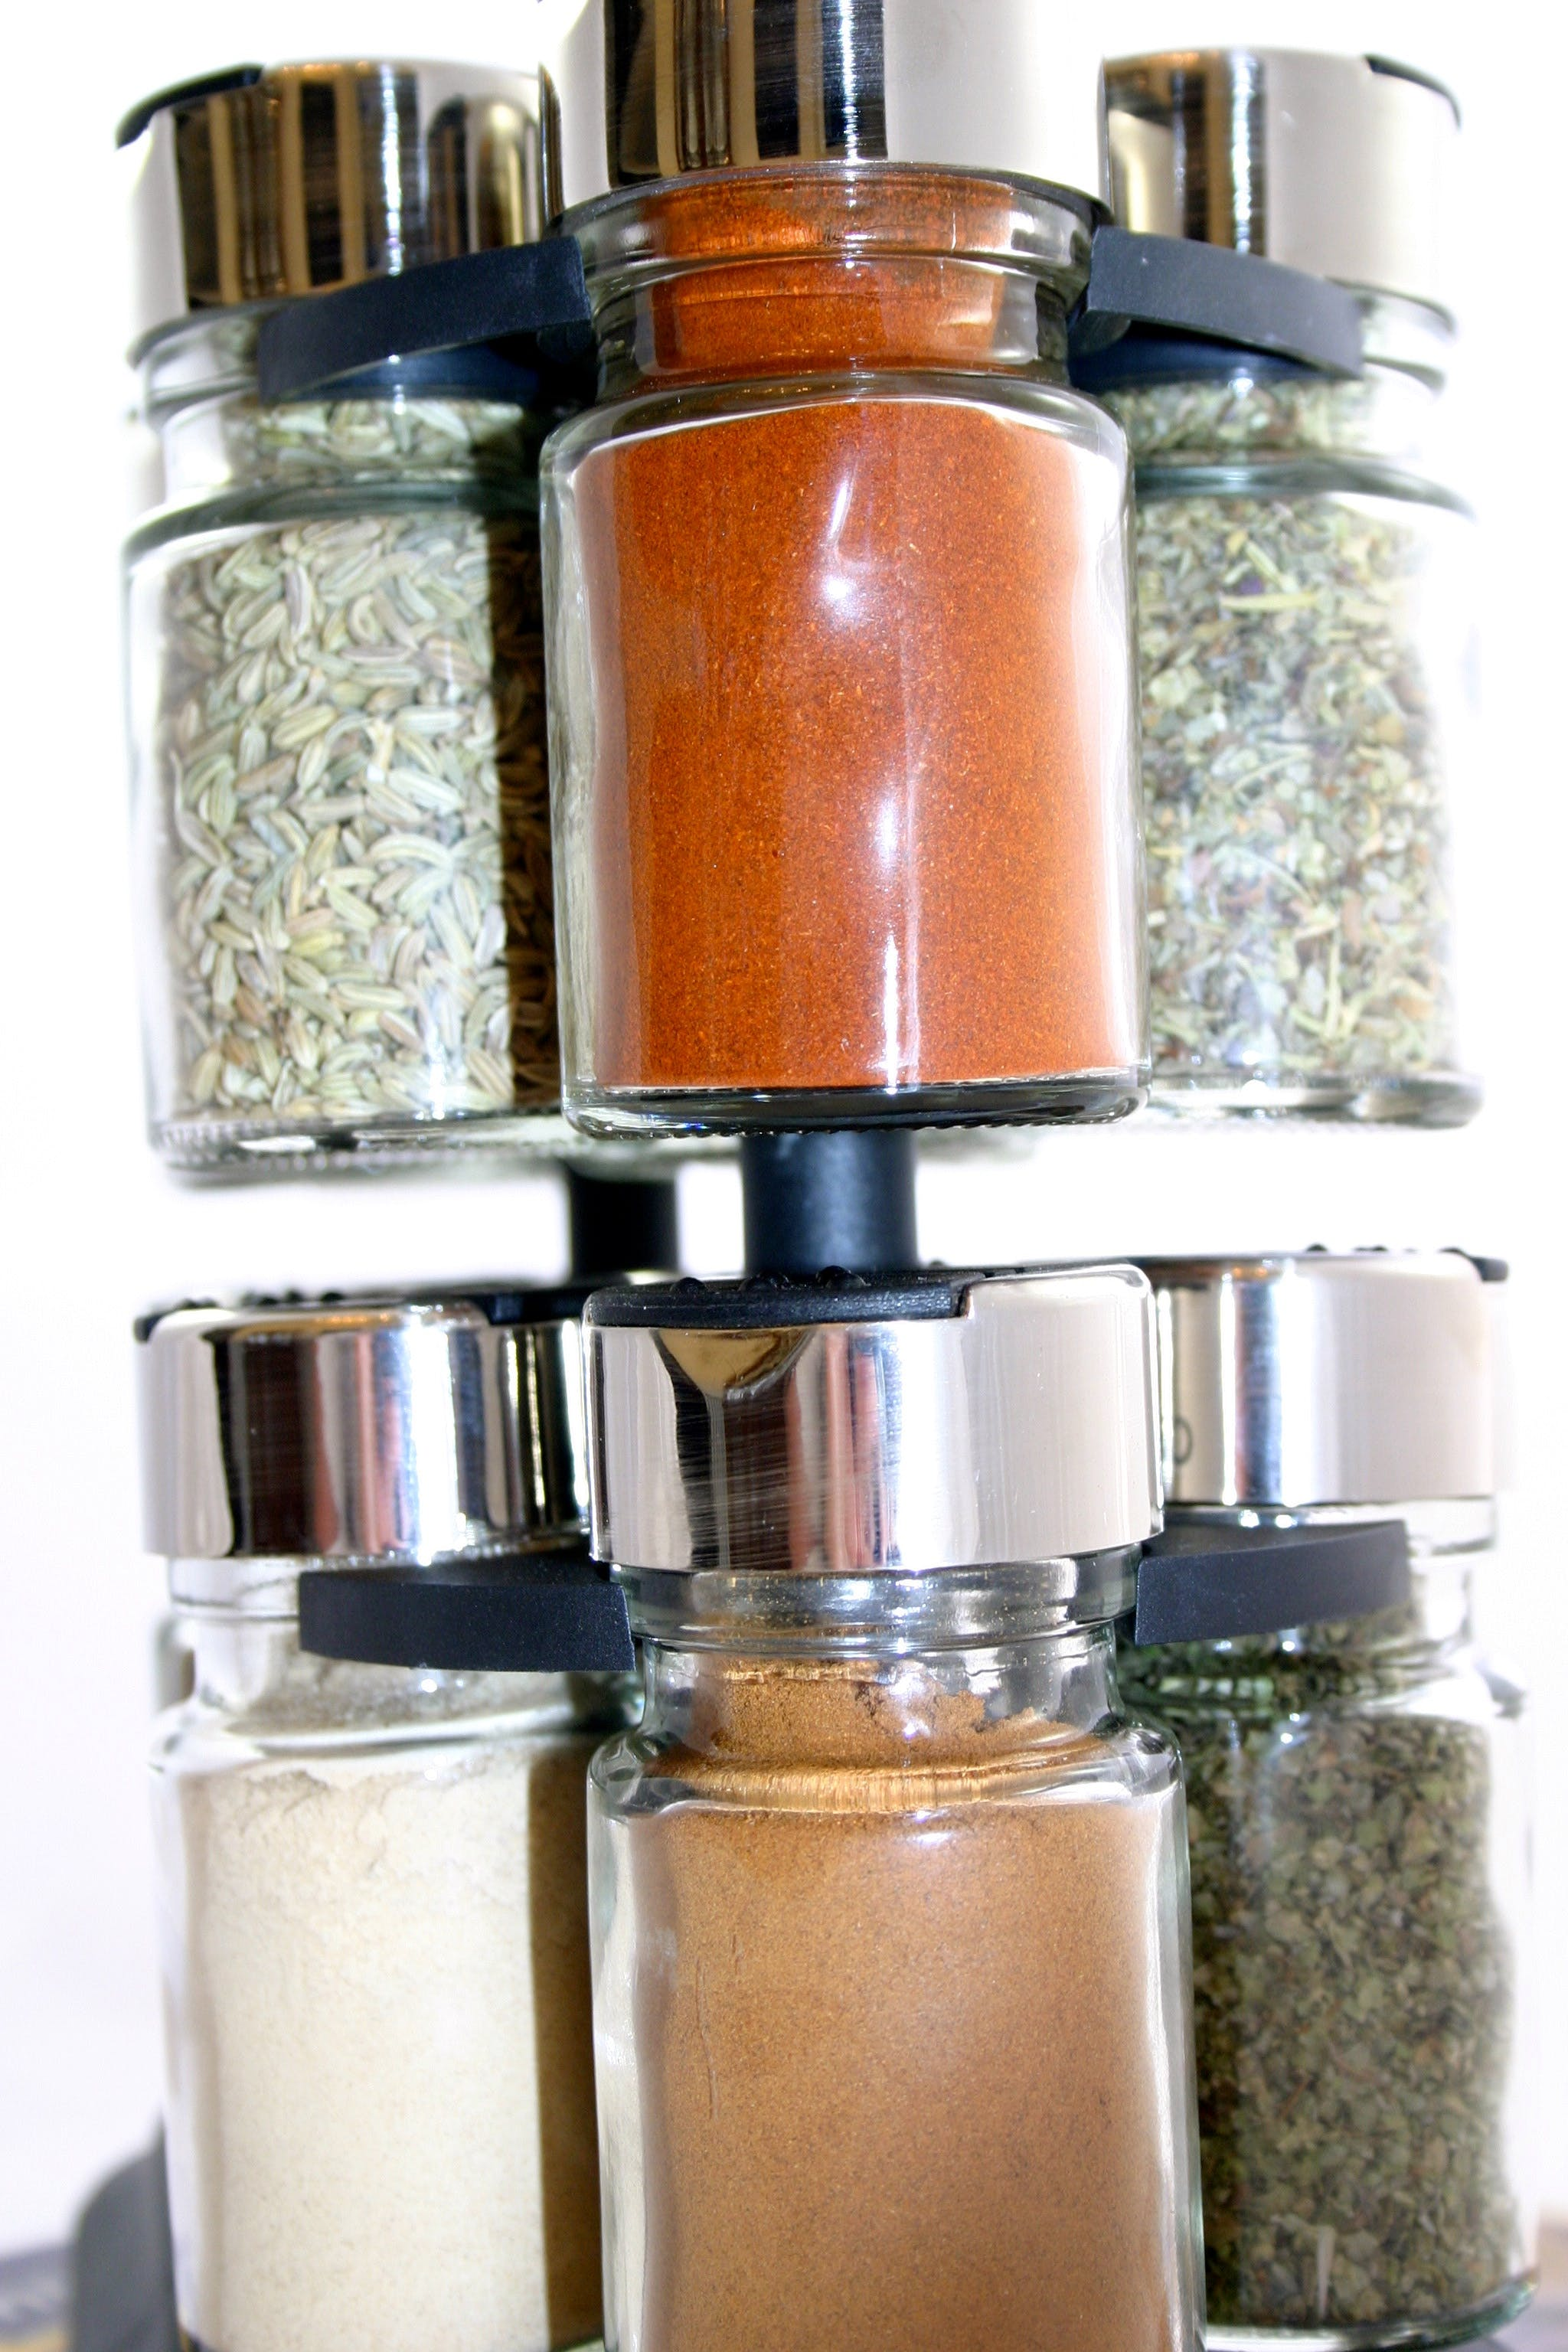 Free stock photo of spice